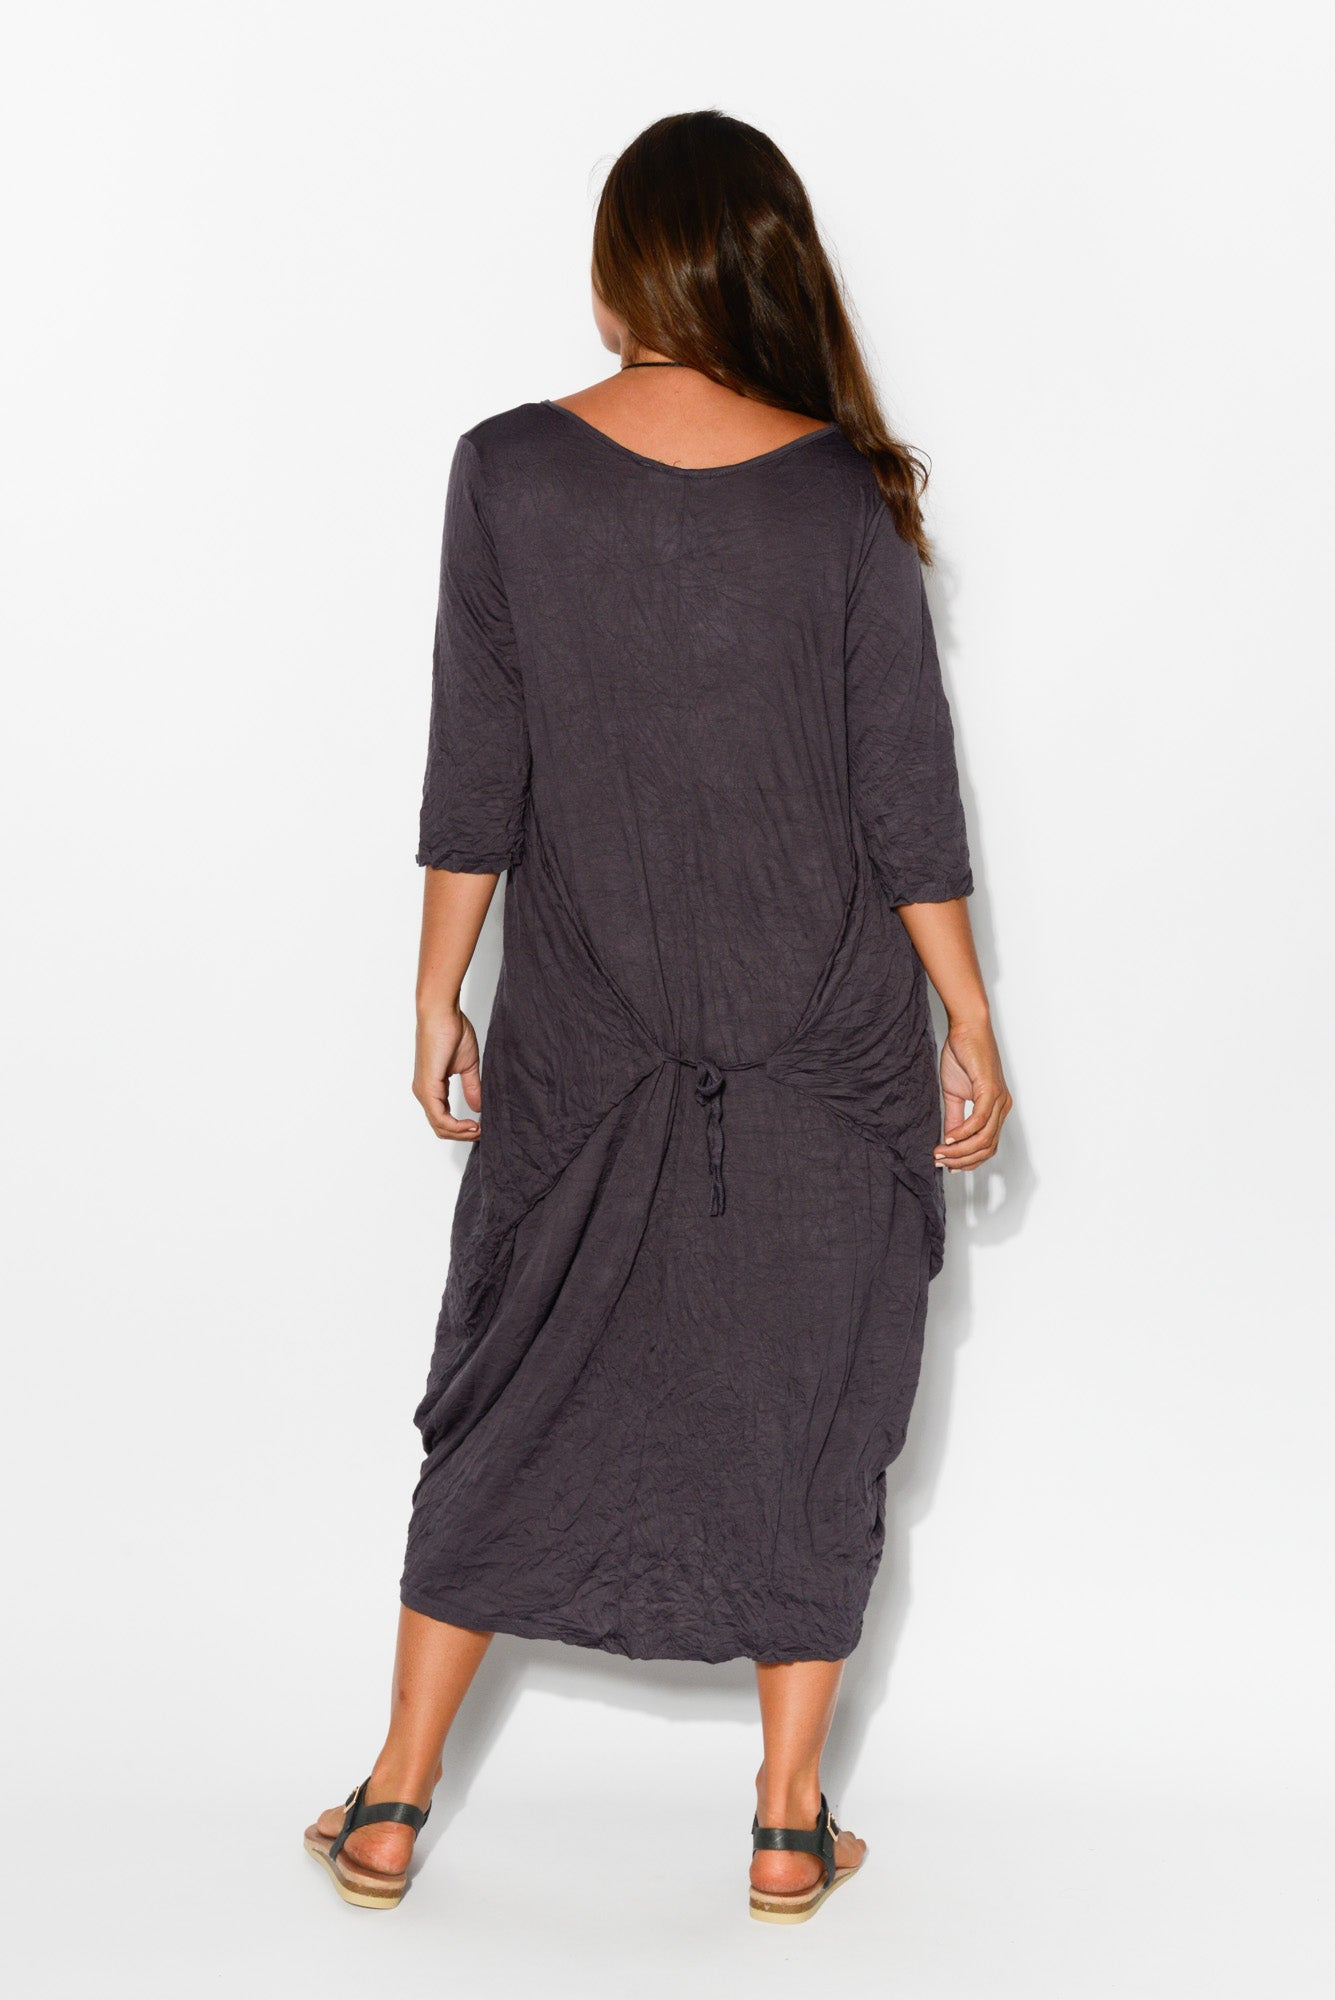 Ink Sleeved Cotton Side Tie Dress - Blue Bungalow